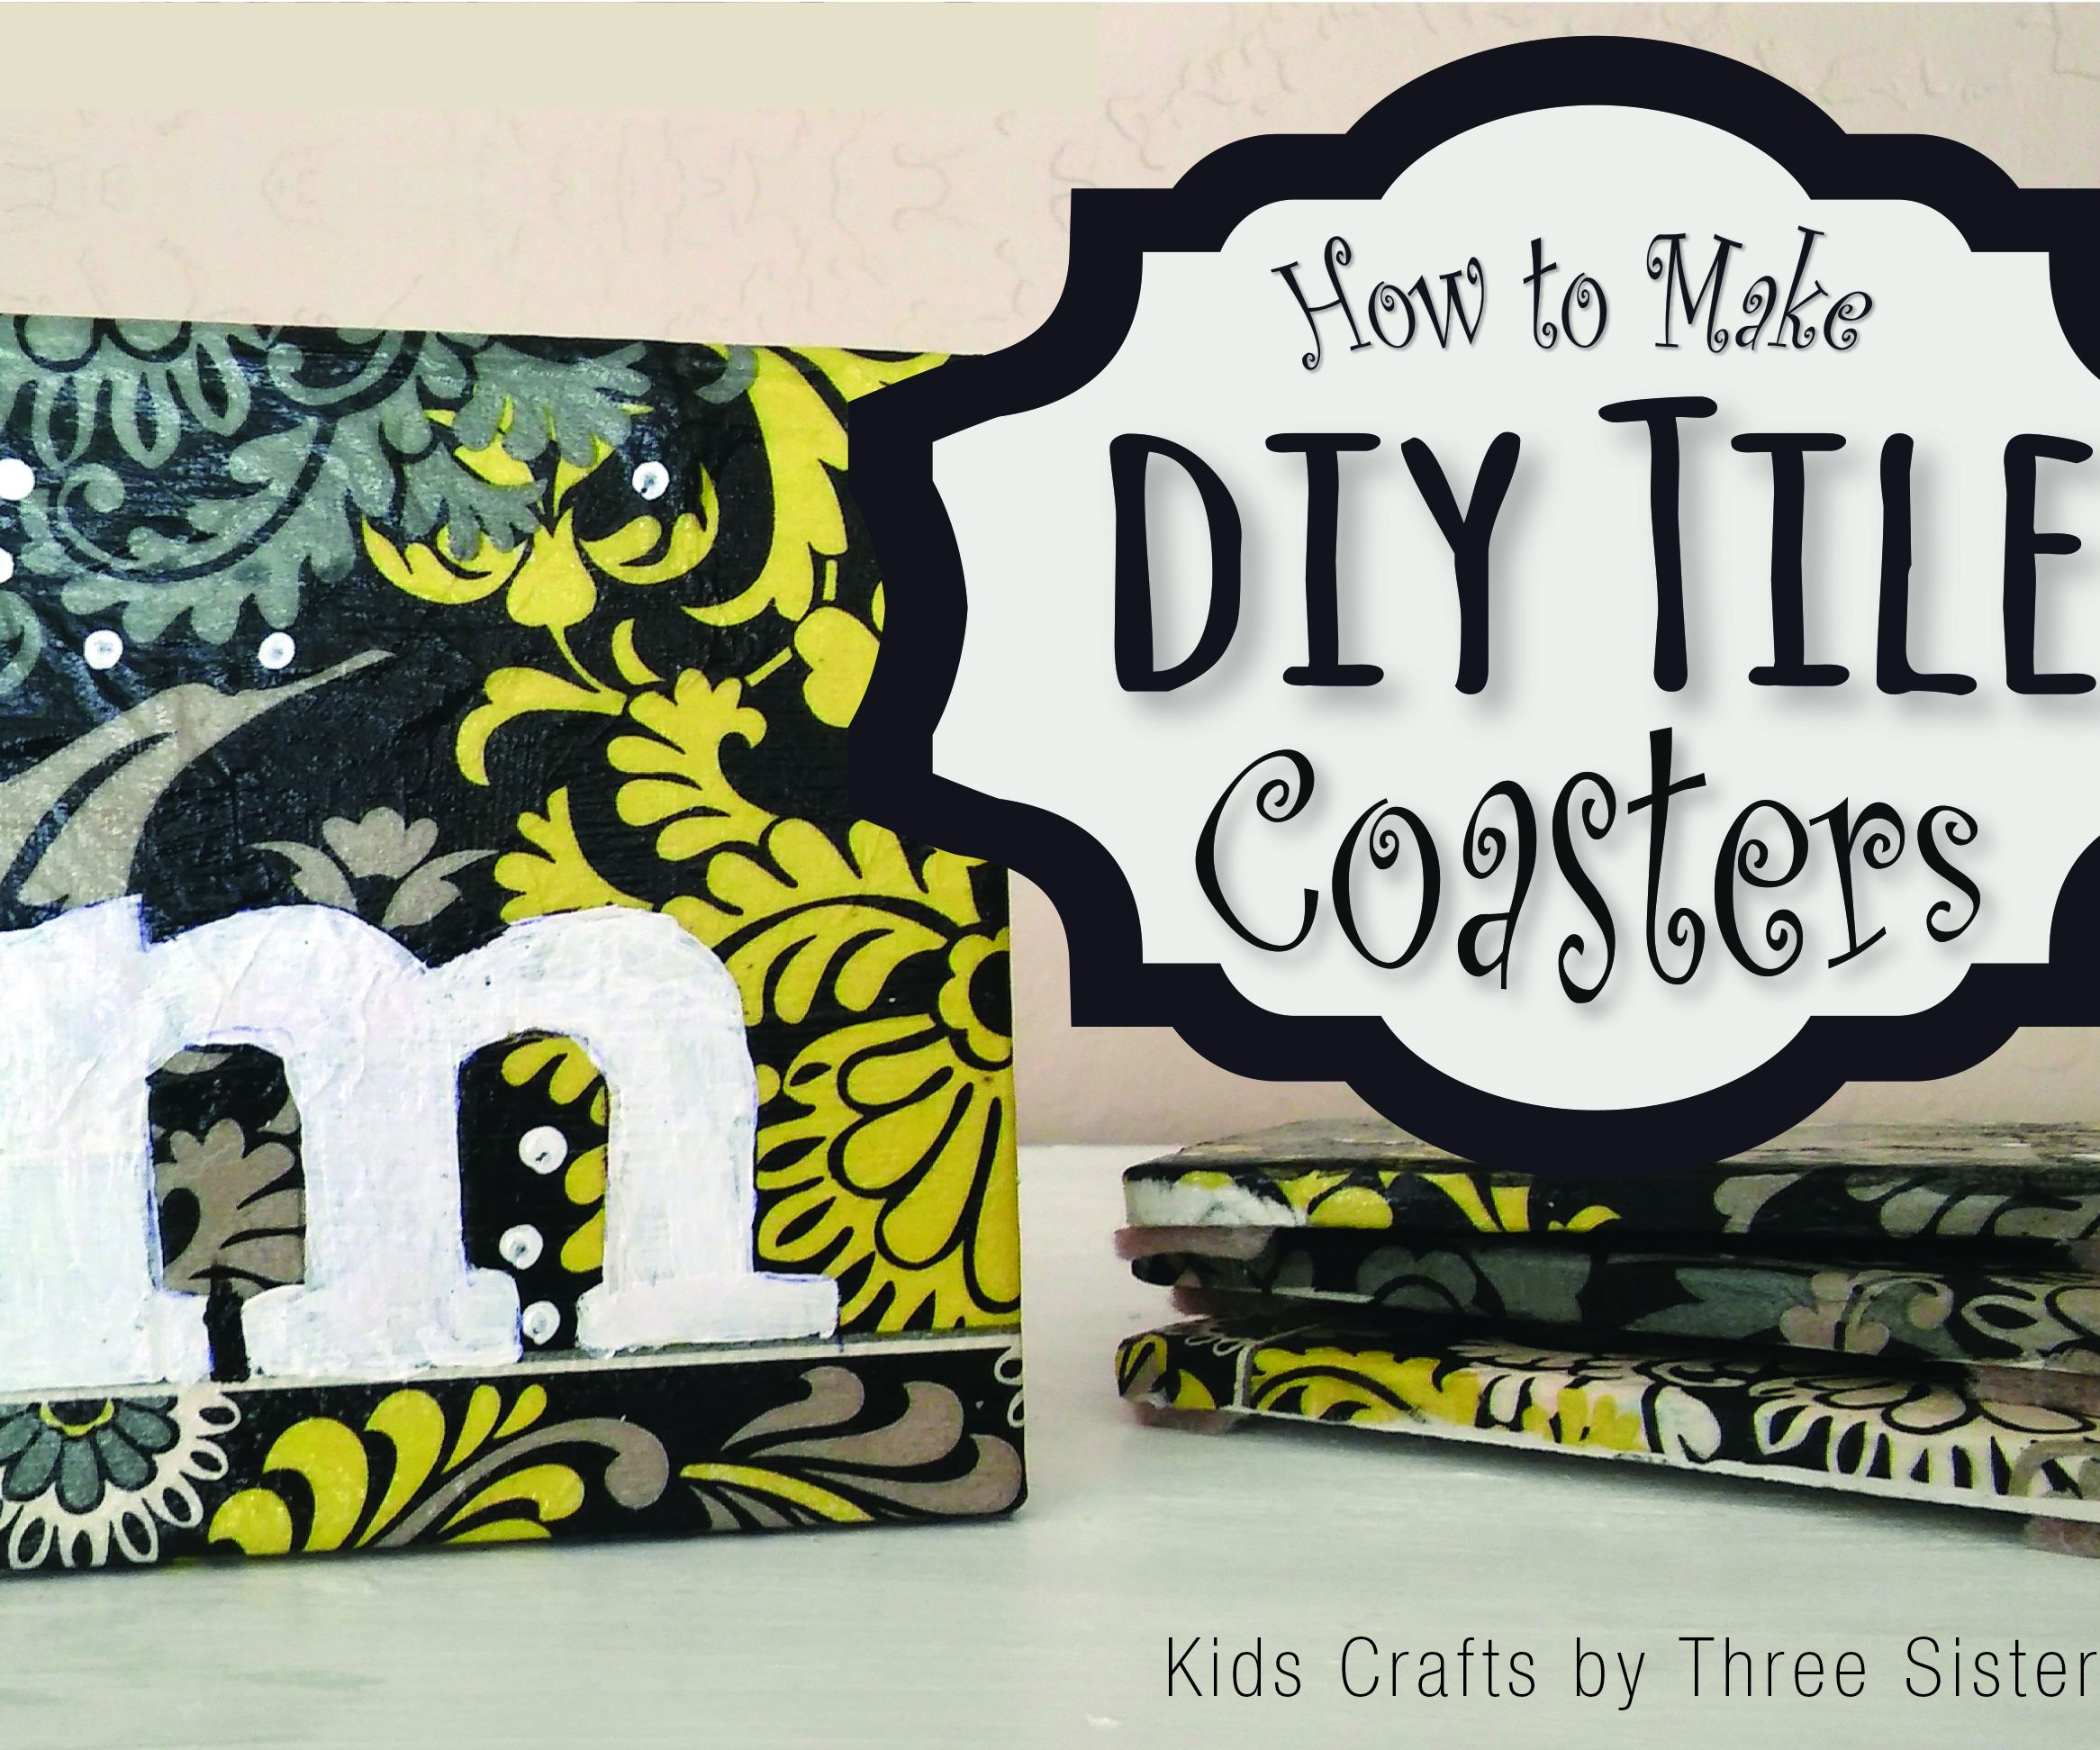 How To Make Ceramic Tile Coasters Instructables